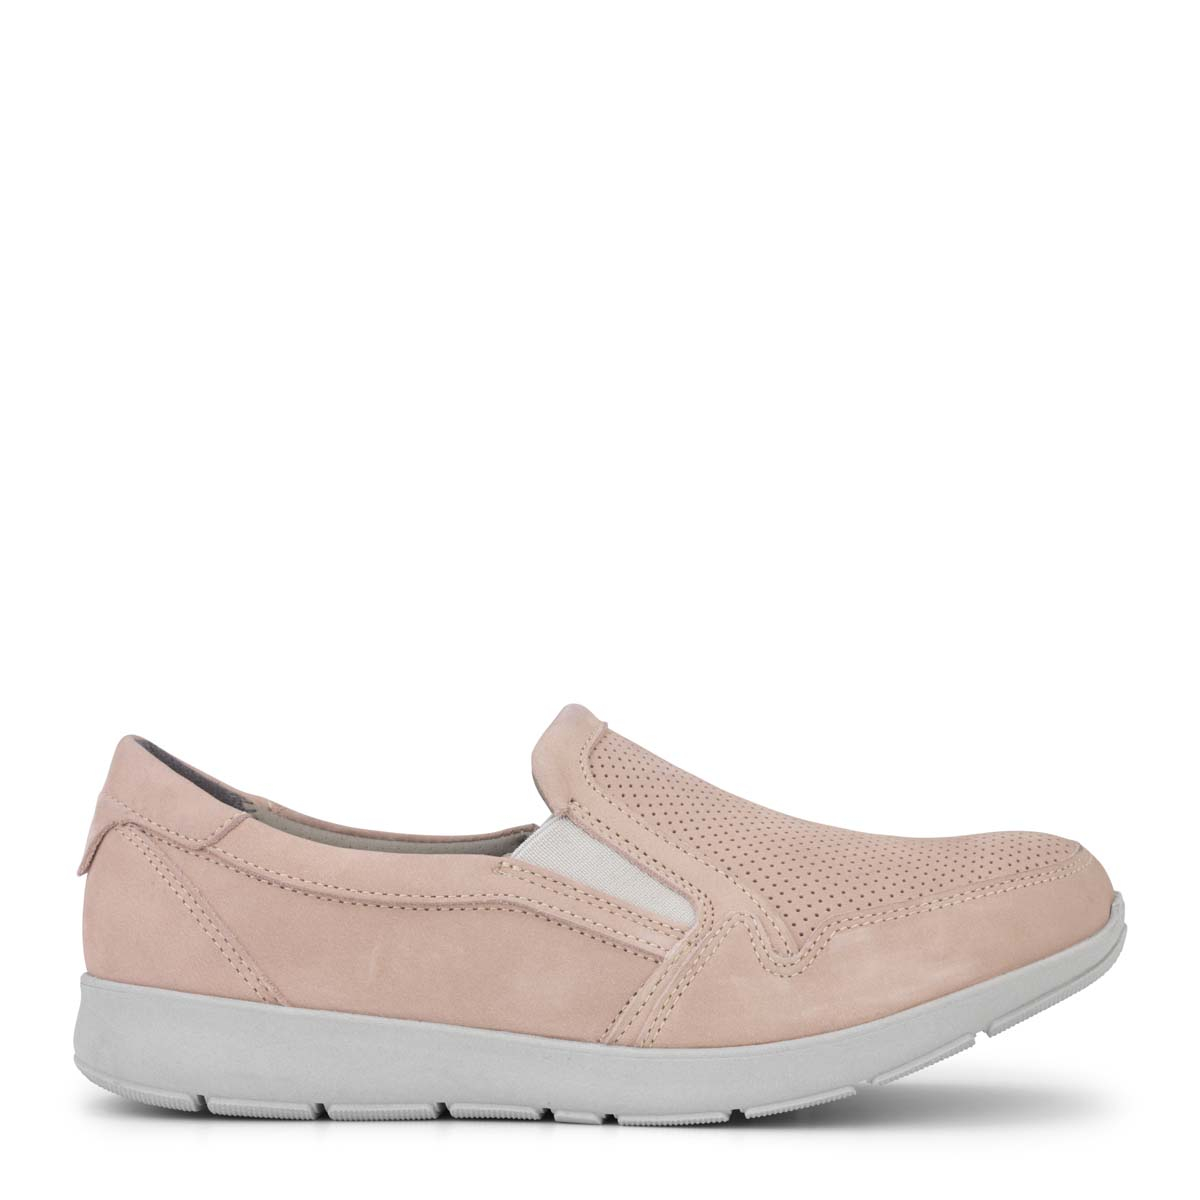 Image of   New Feet loafer i rosa nubuck